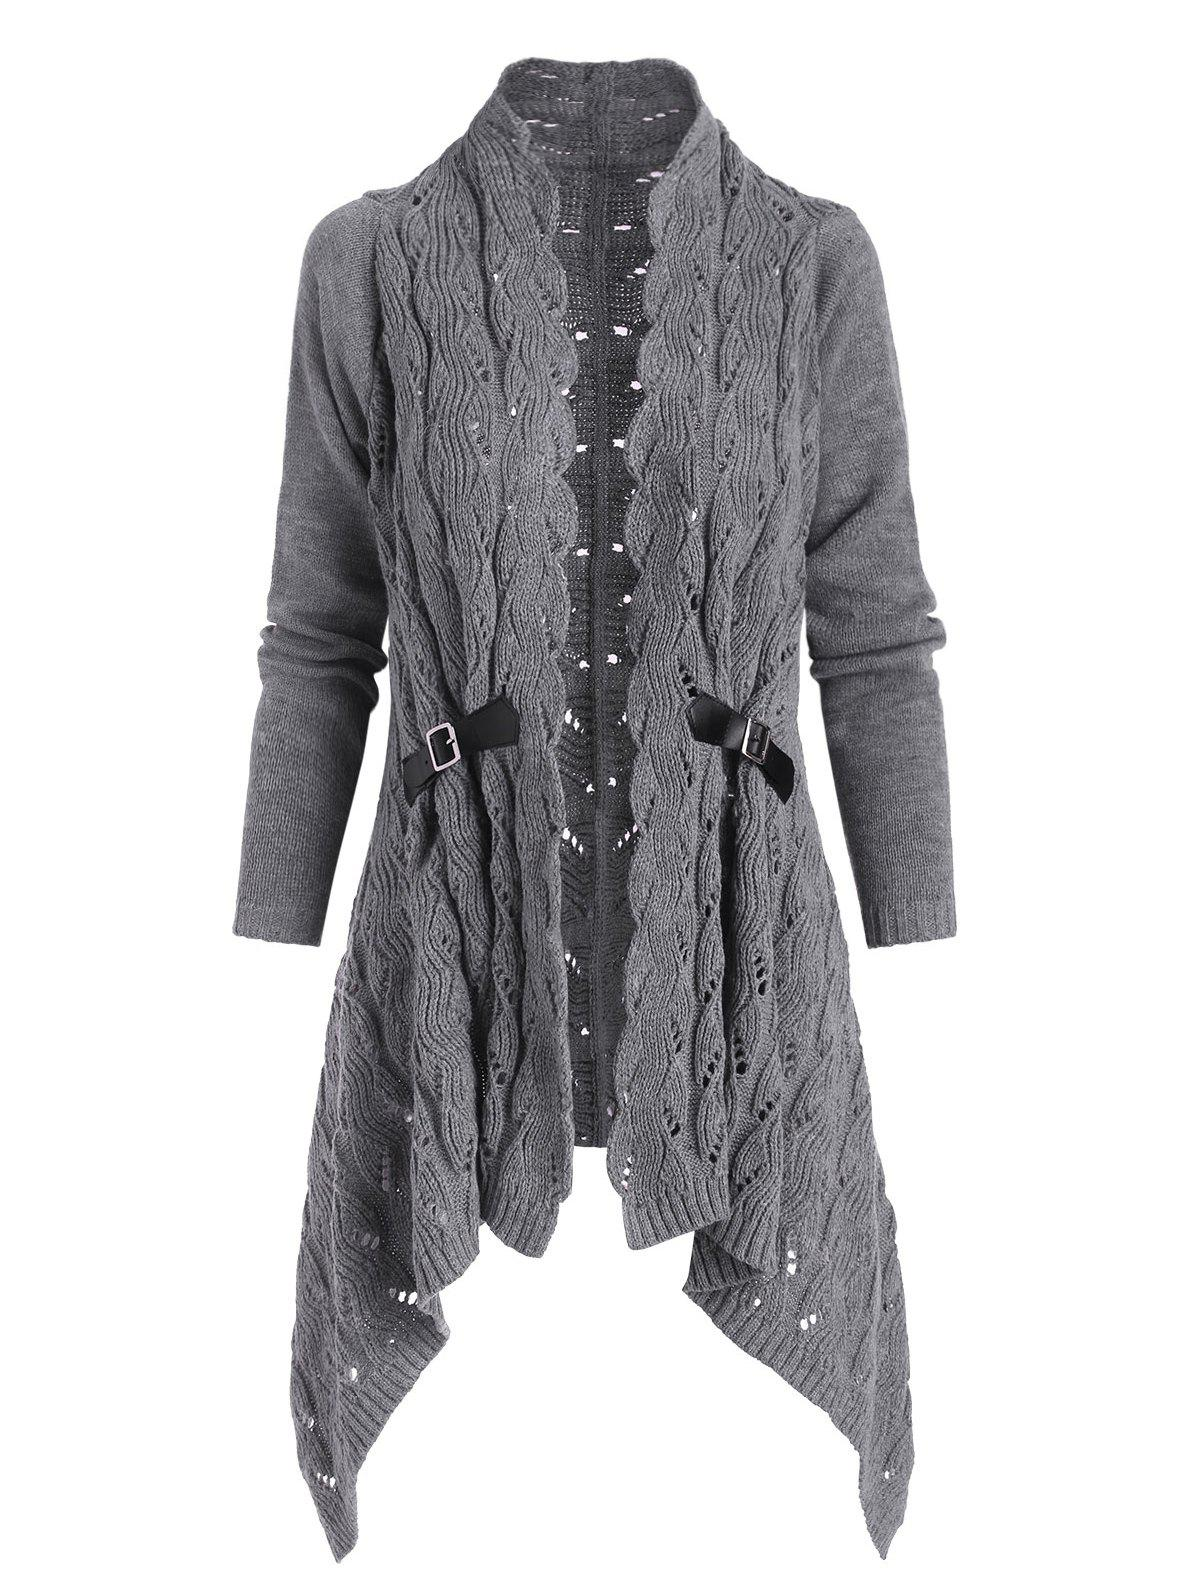 Openwork Buckle Embellished Open Front Cardigan - LIGHT GRAY XL